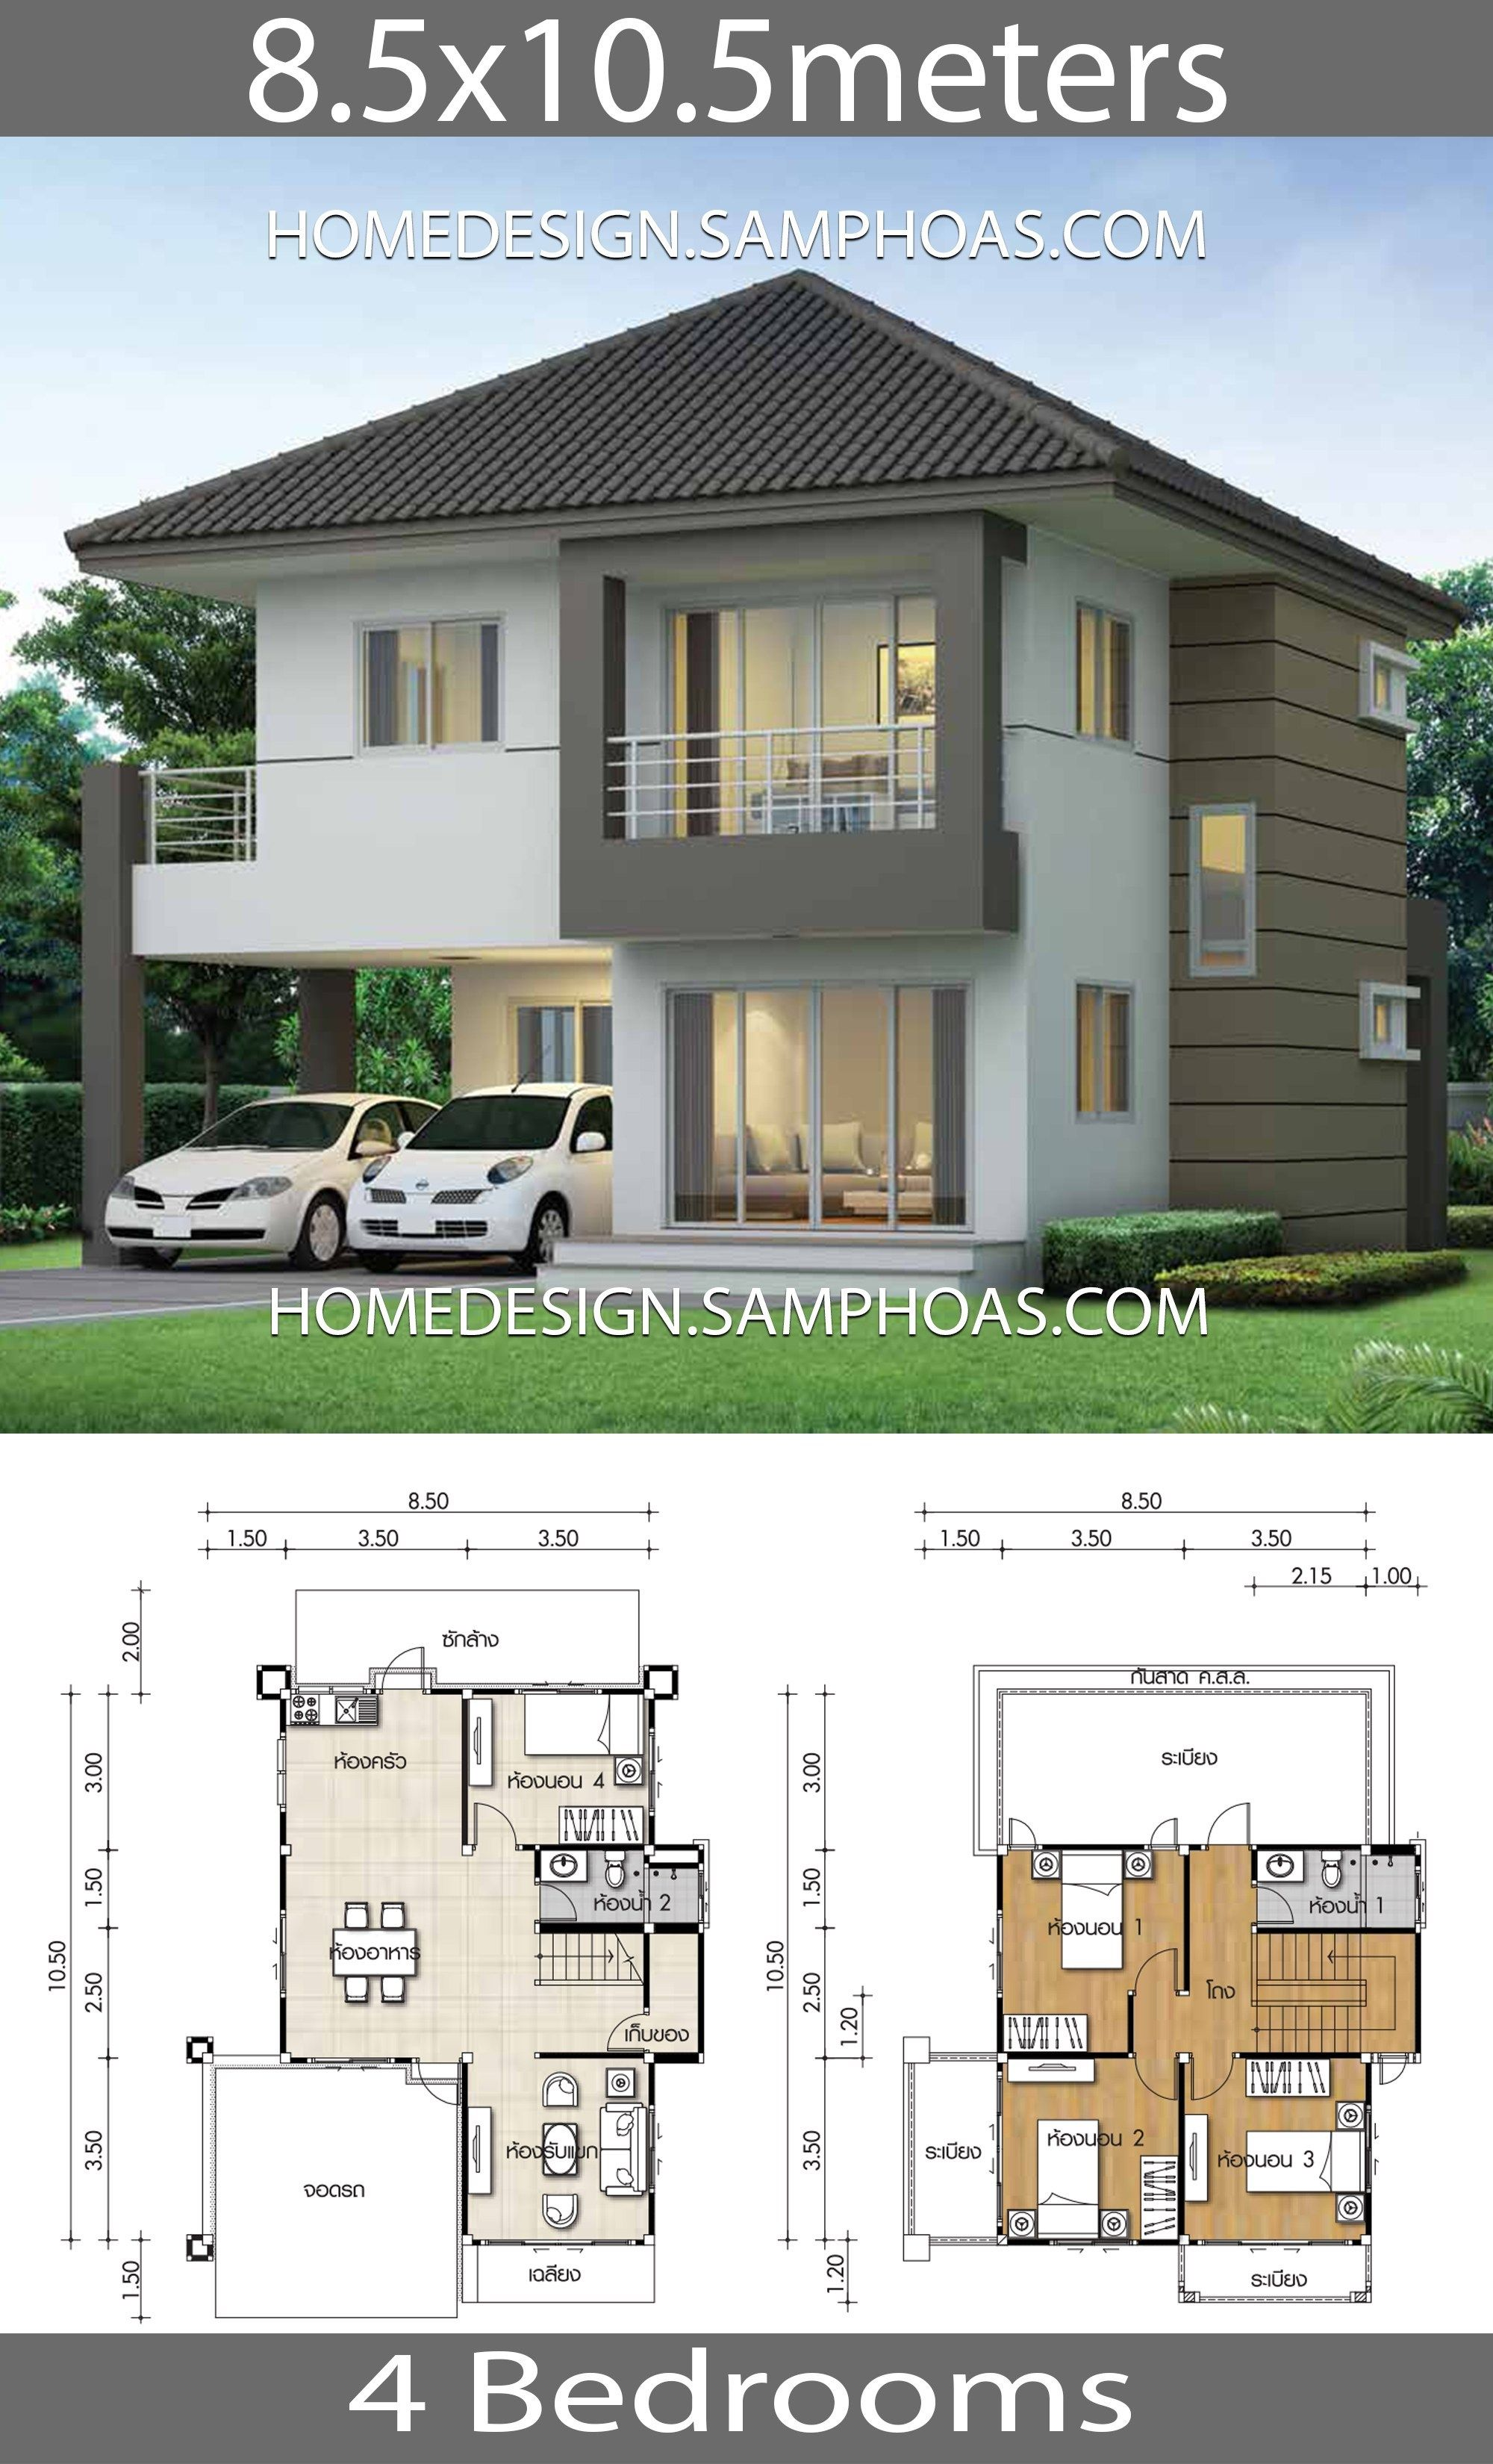 House Design Plans 8 5x10 5m With 4 Bedroomshouse Description Ground Level One Bedroom Two Cars Parkin Architectural House Plans House Plans Model House Plan